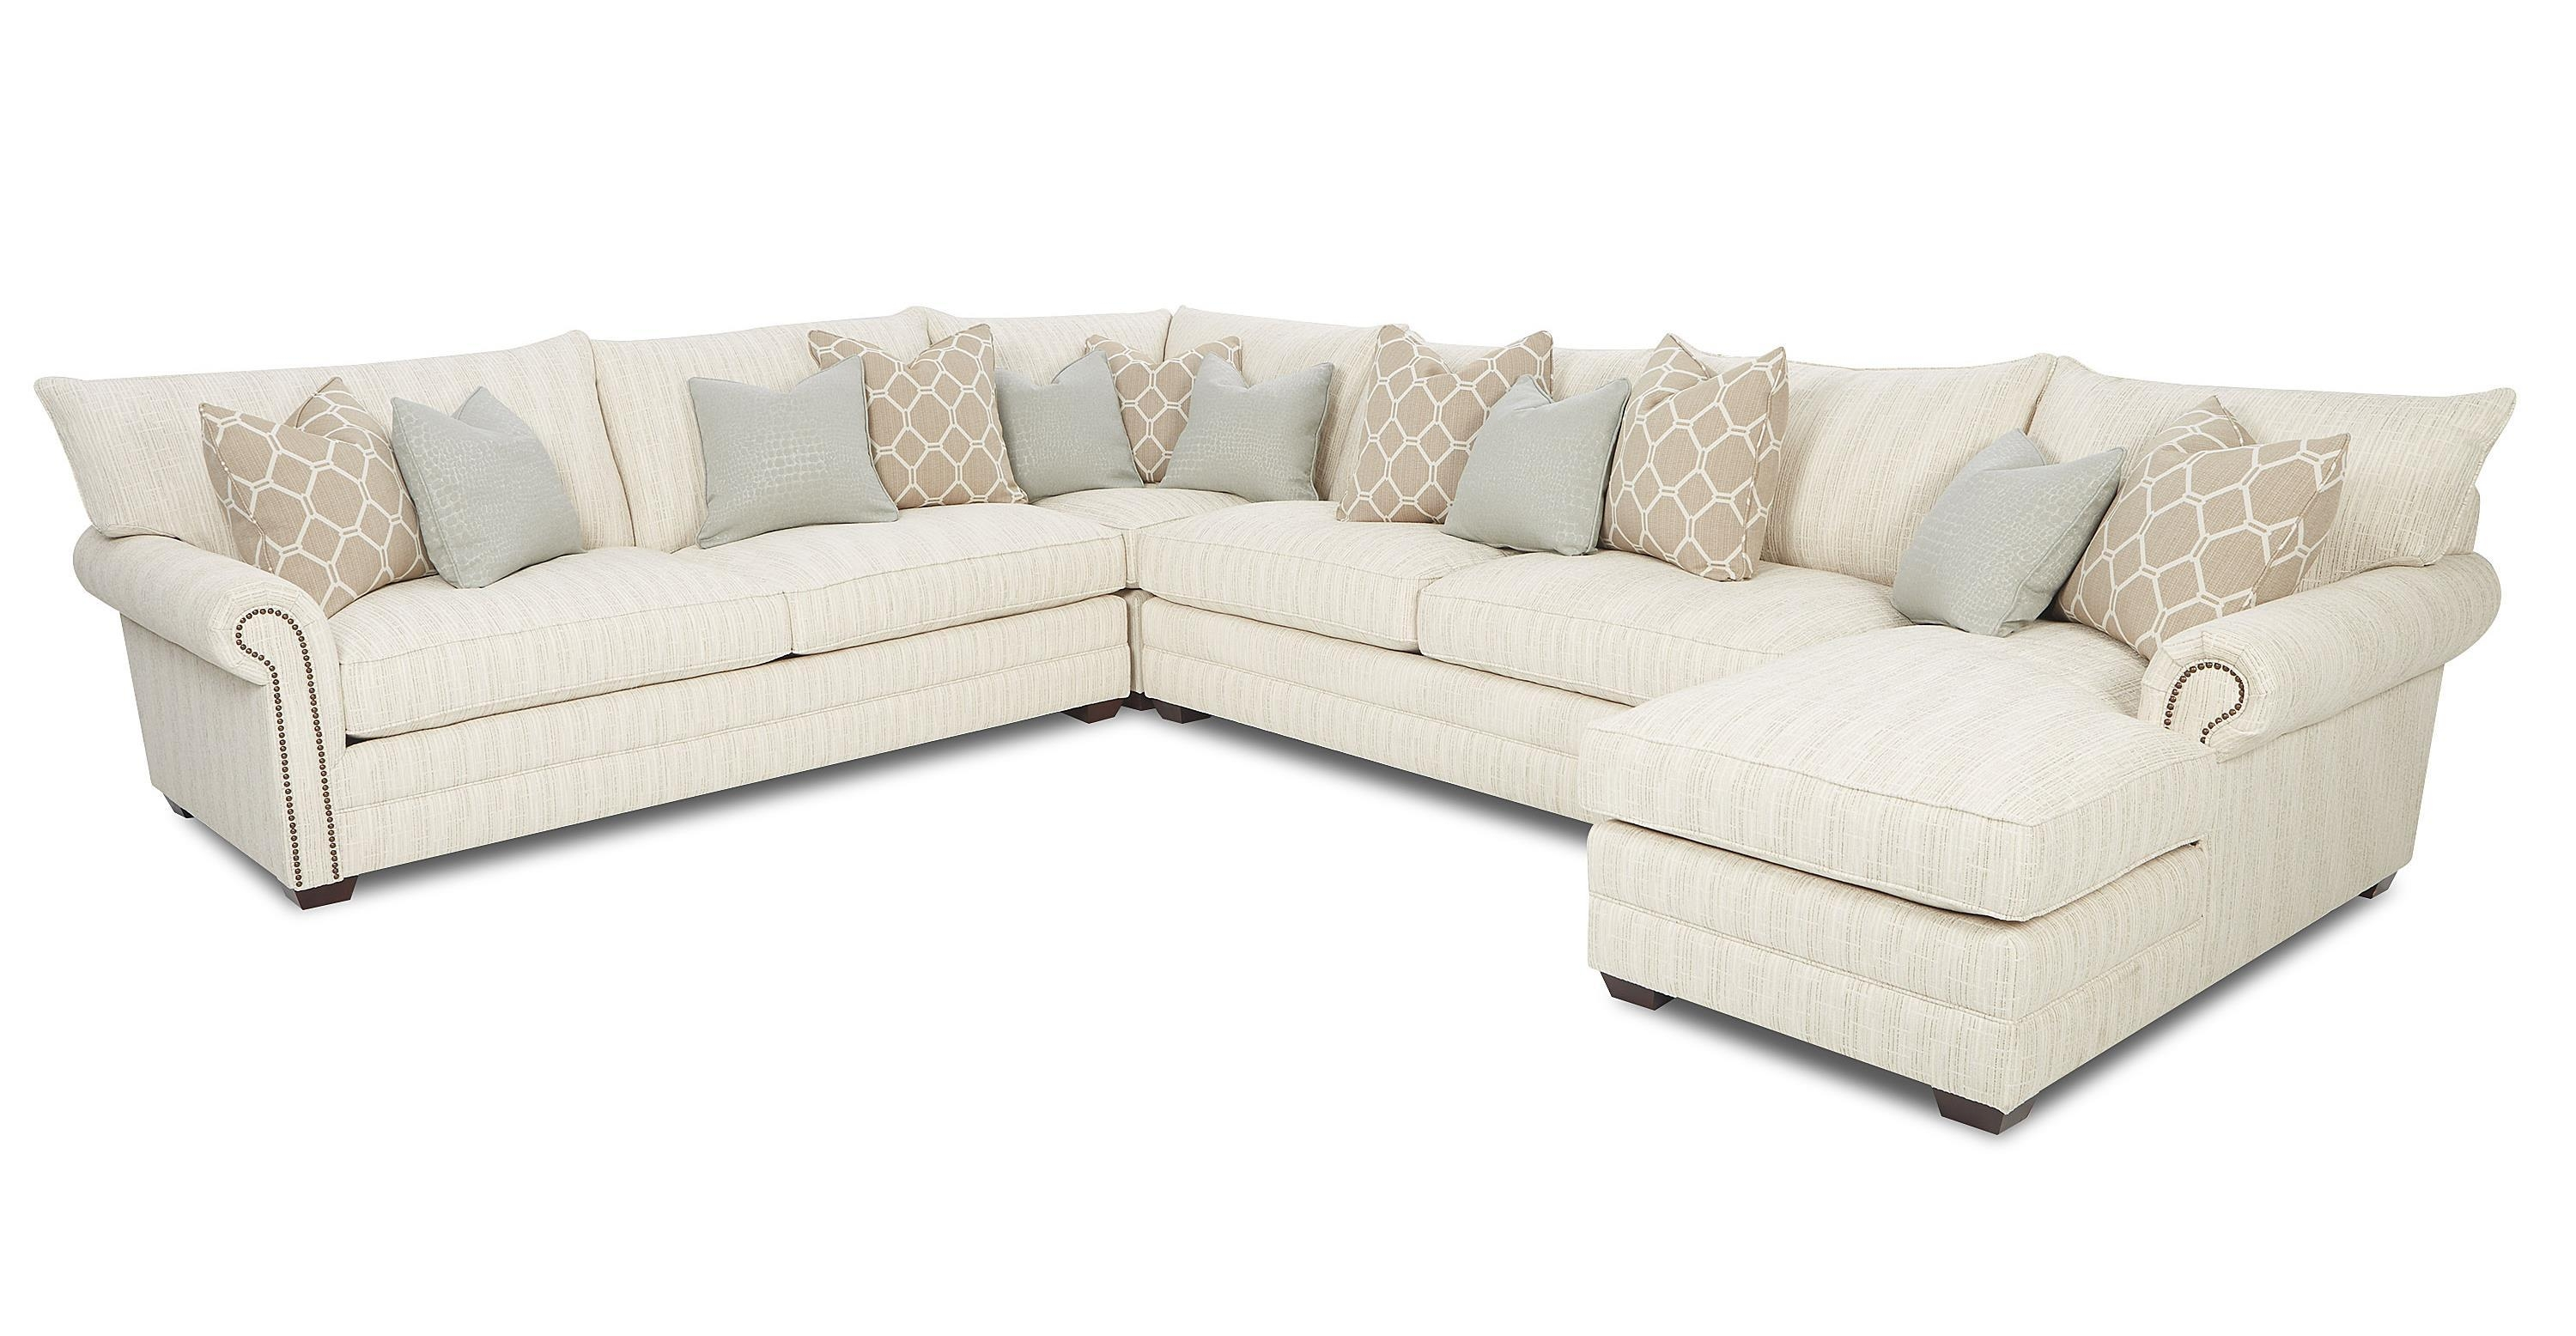 Traditional Sectional Sofa With Nailhead Trim And Chaise Lounge With Regard To Traditional Sectional Sofas (View 20 of 20)